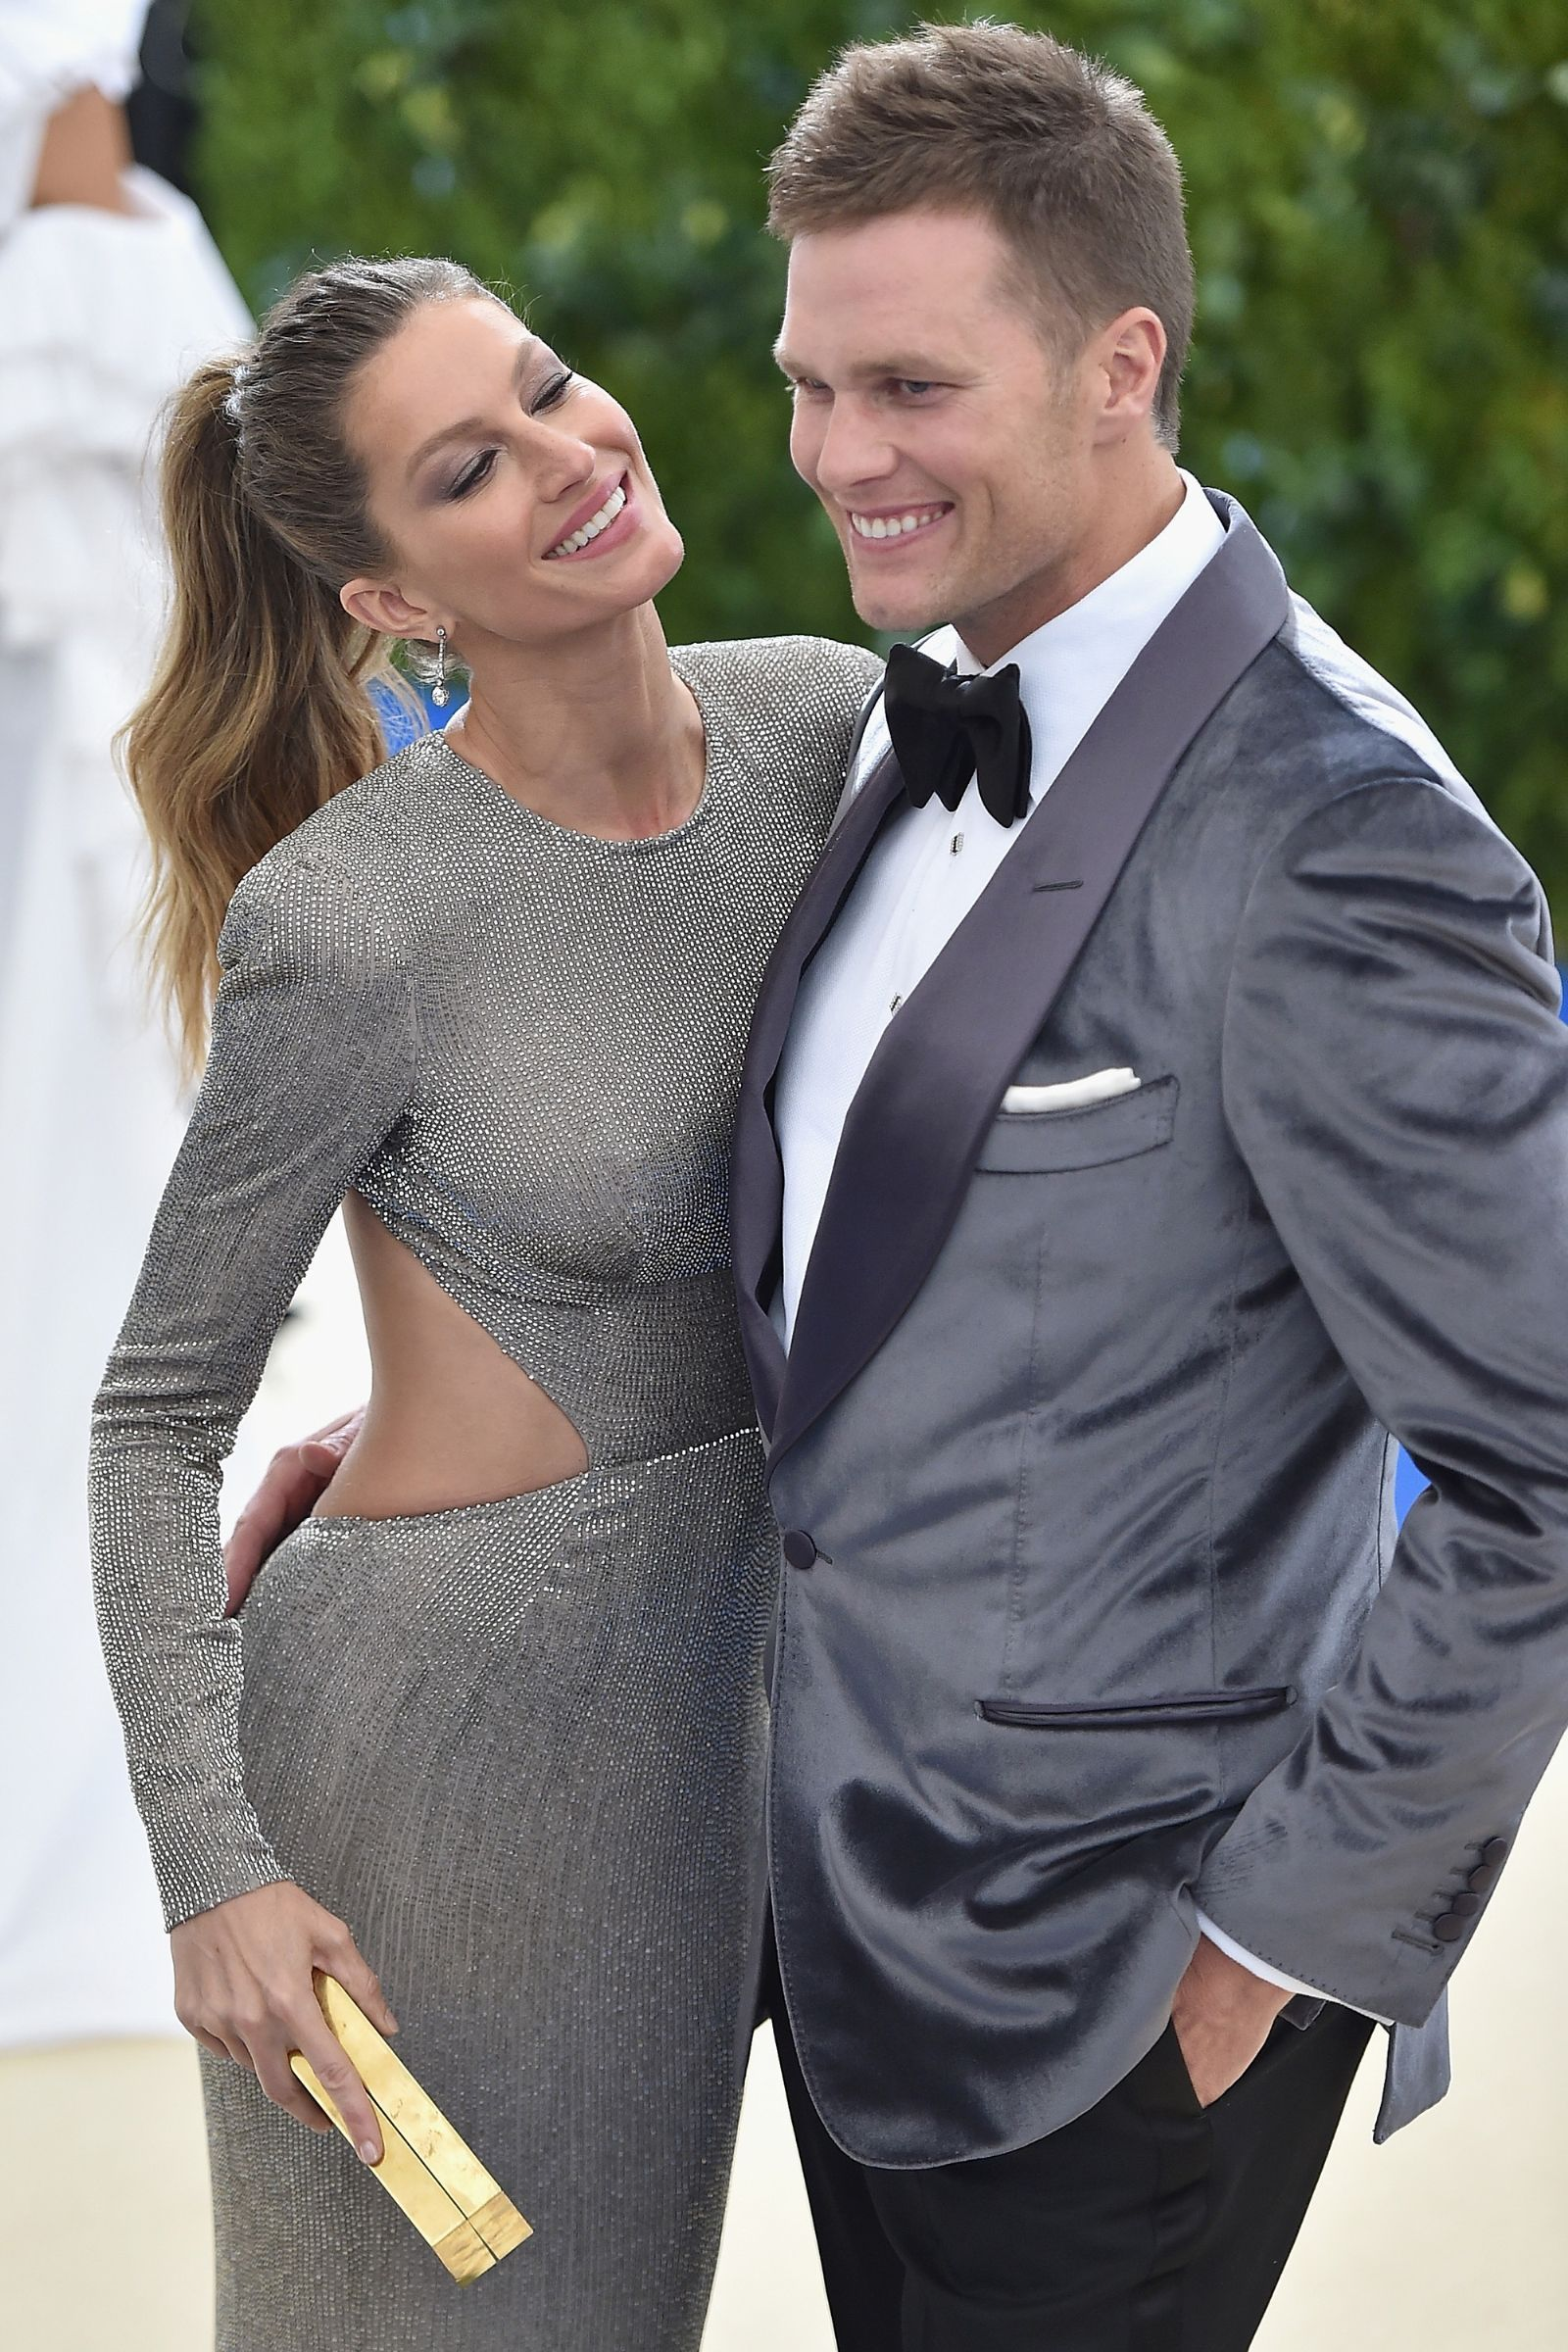 Gisele Bündchen & NFL great/husband Tom Brady - In Photos: The Best Candid